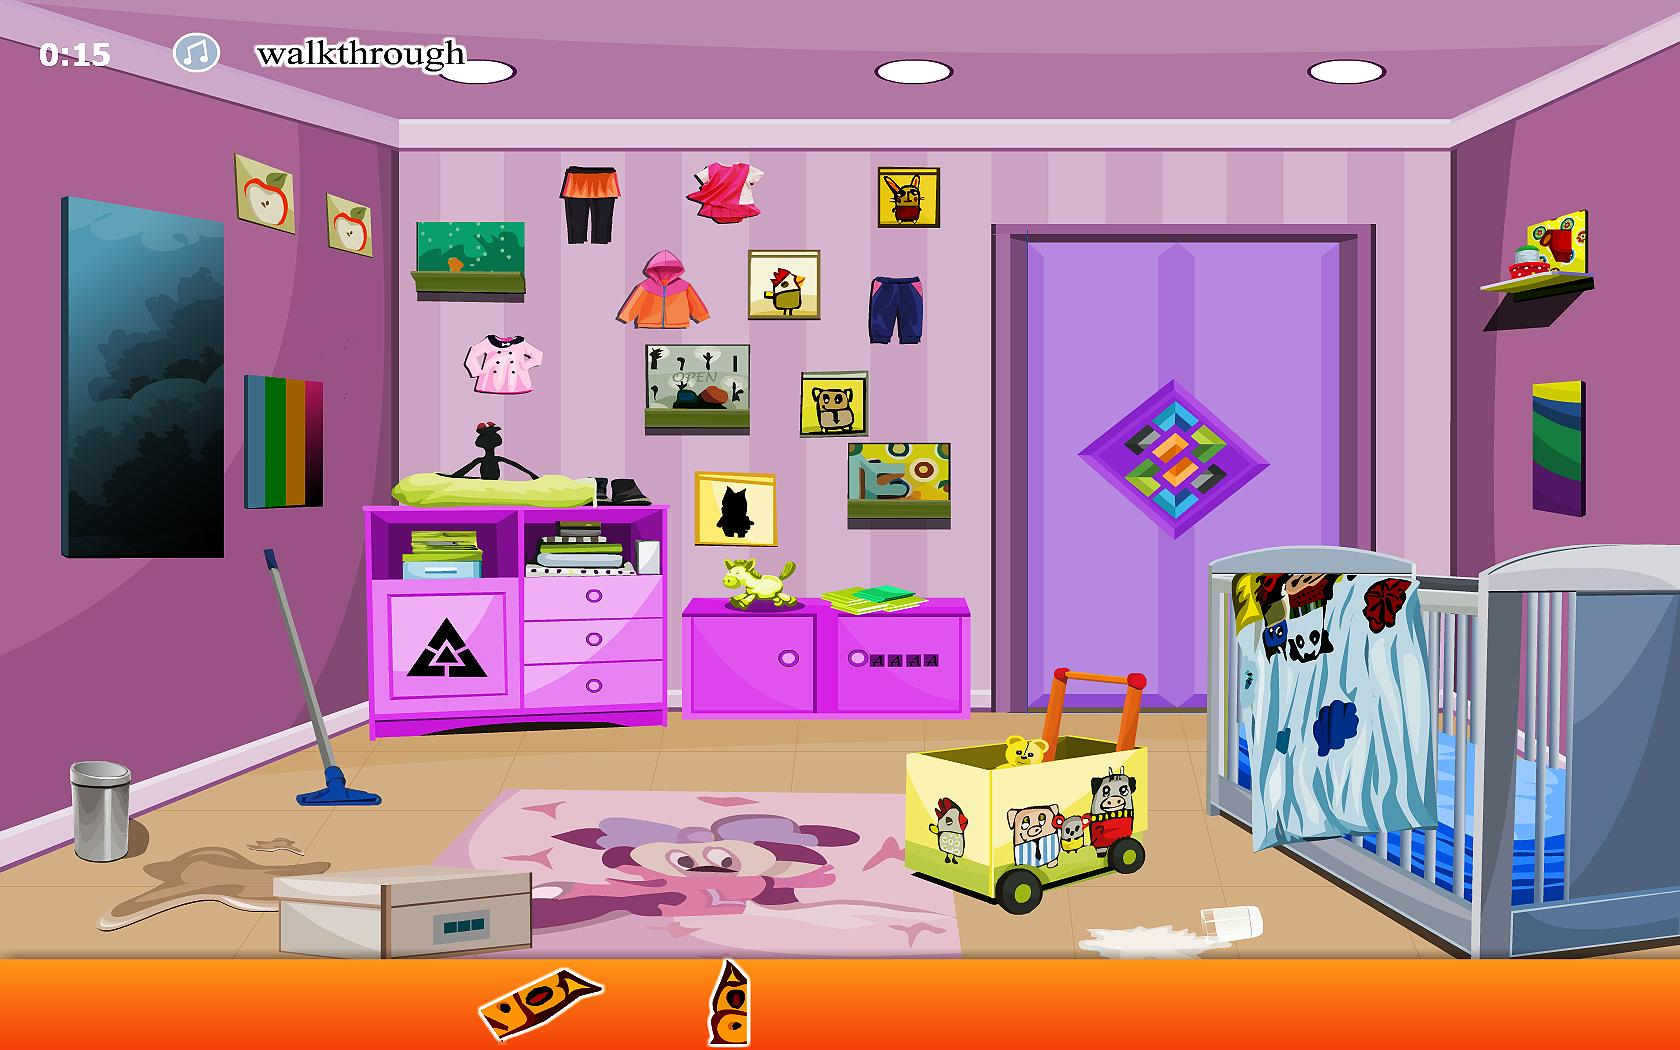 Messy Baby Room Escape For Android - APK Download